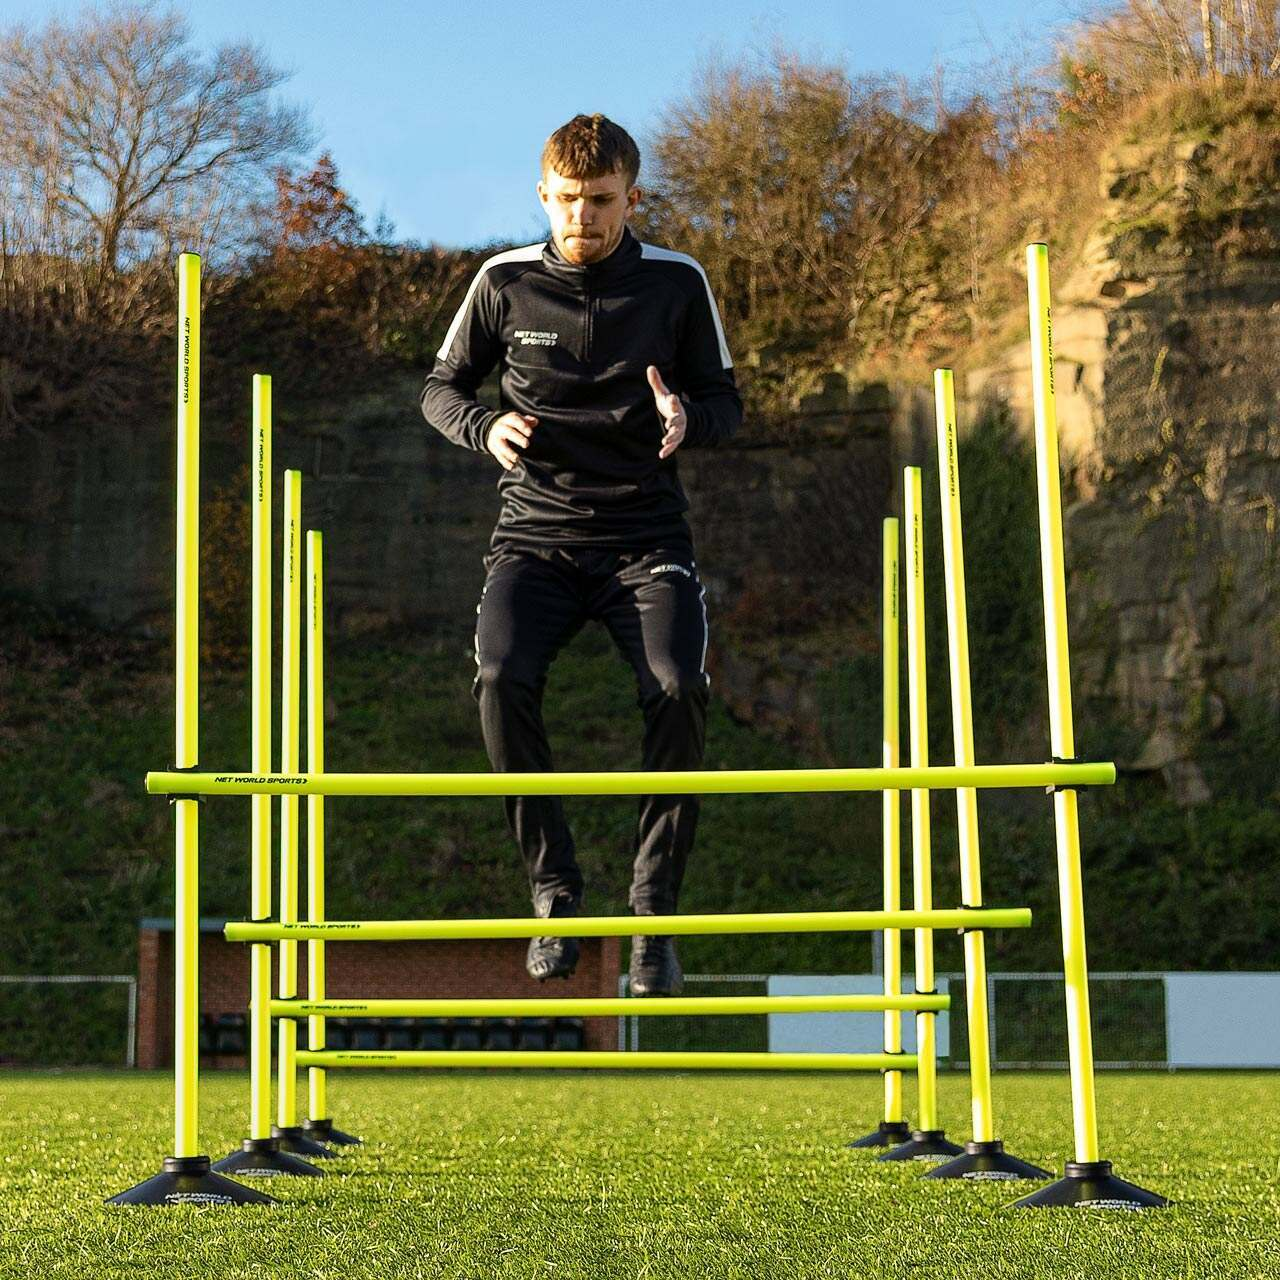 4ft (1.2m) Adjustable Training Hurdles [Rubber Bases]